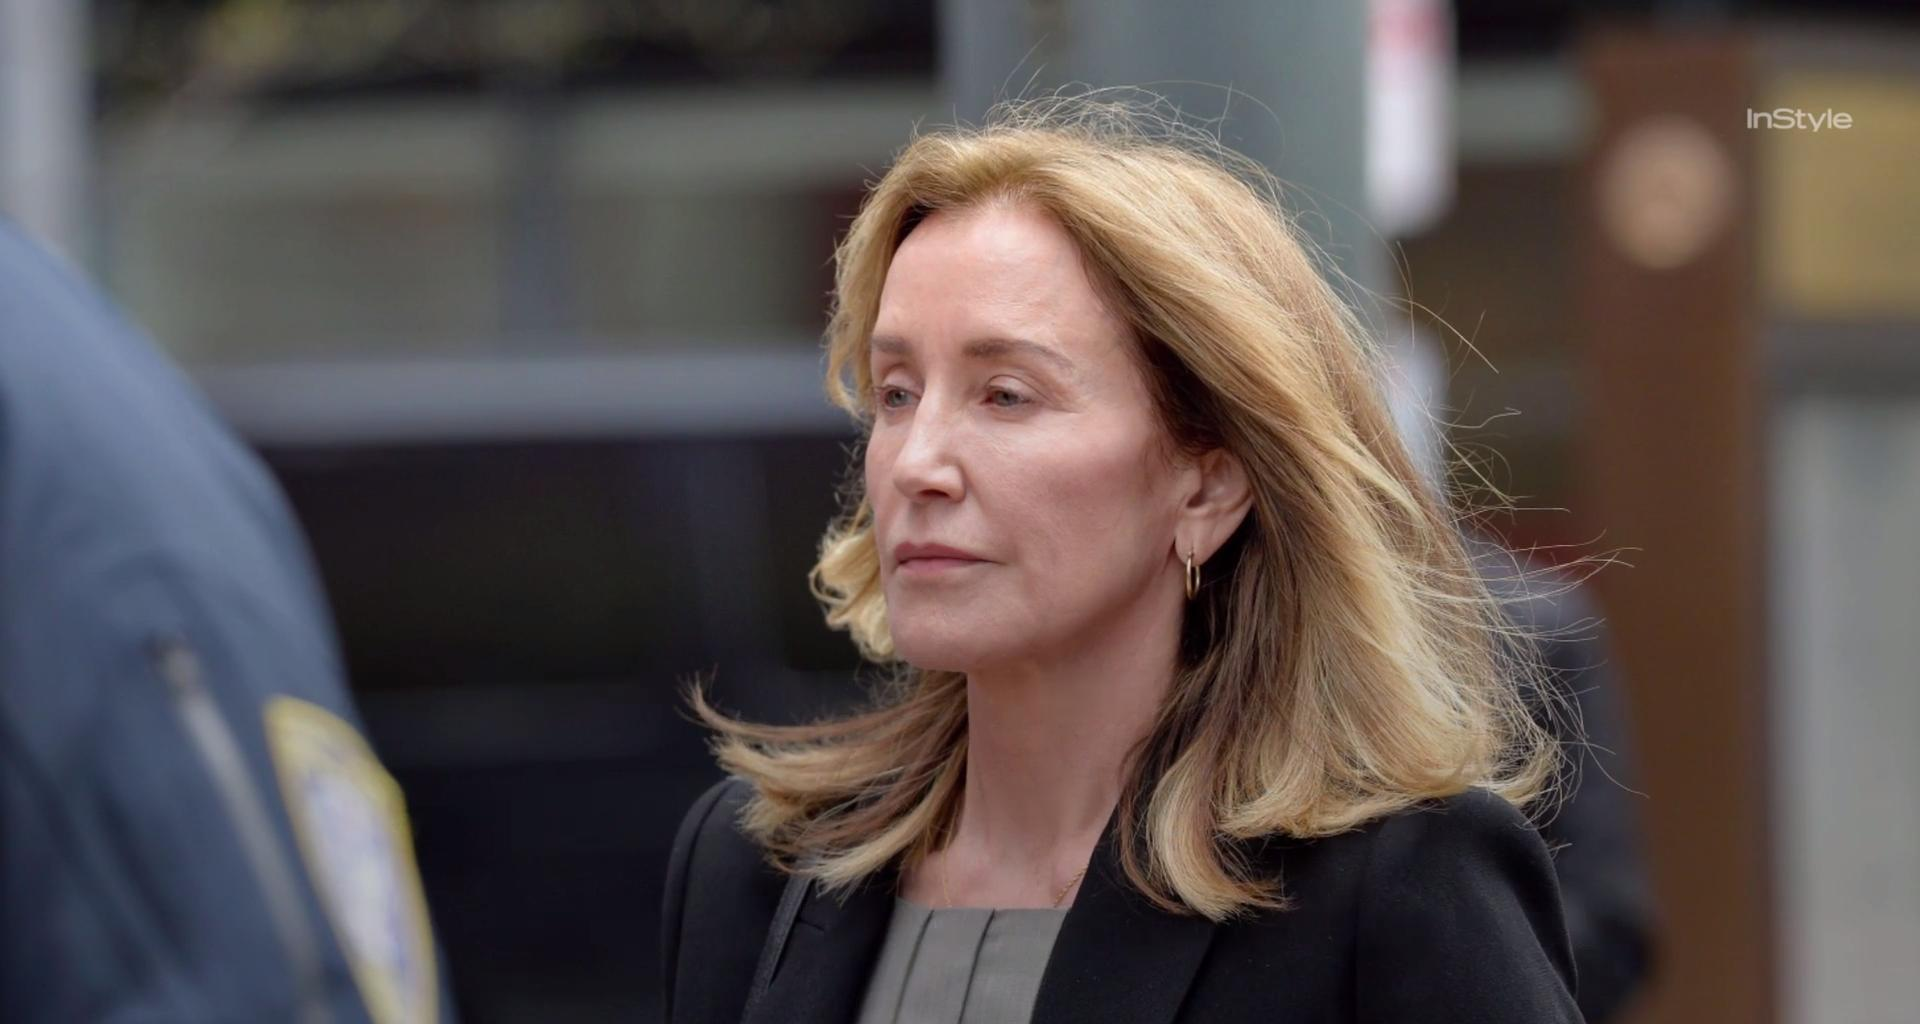 Felicity Huffman 'Blessed' To Be Home With Her Family On Thanksgiving After Prison Sentence